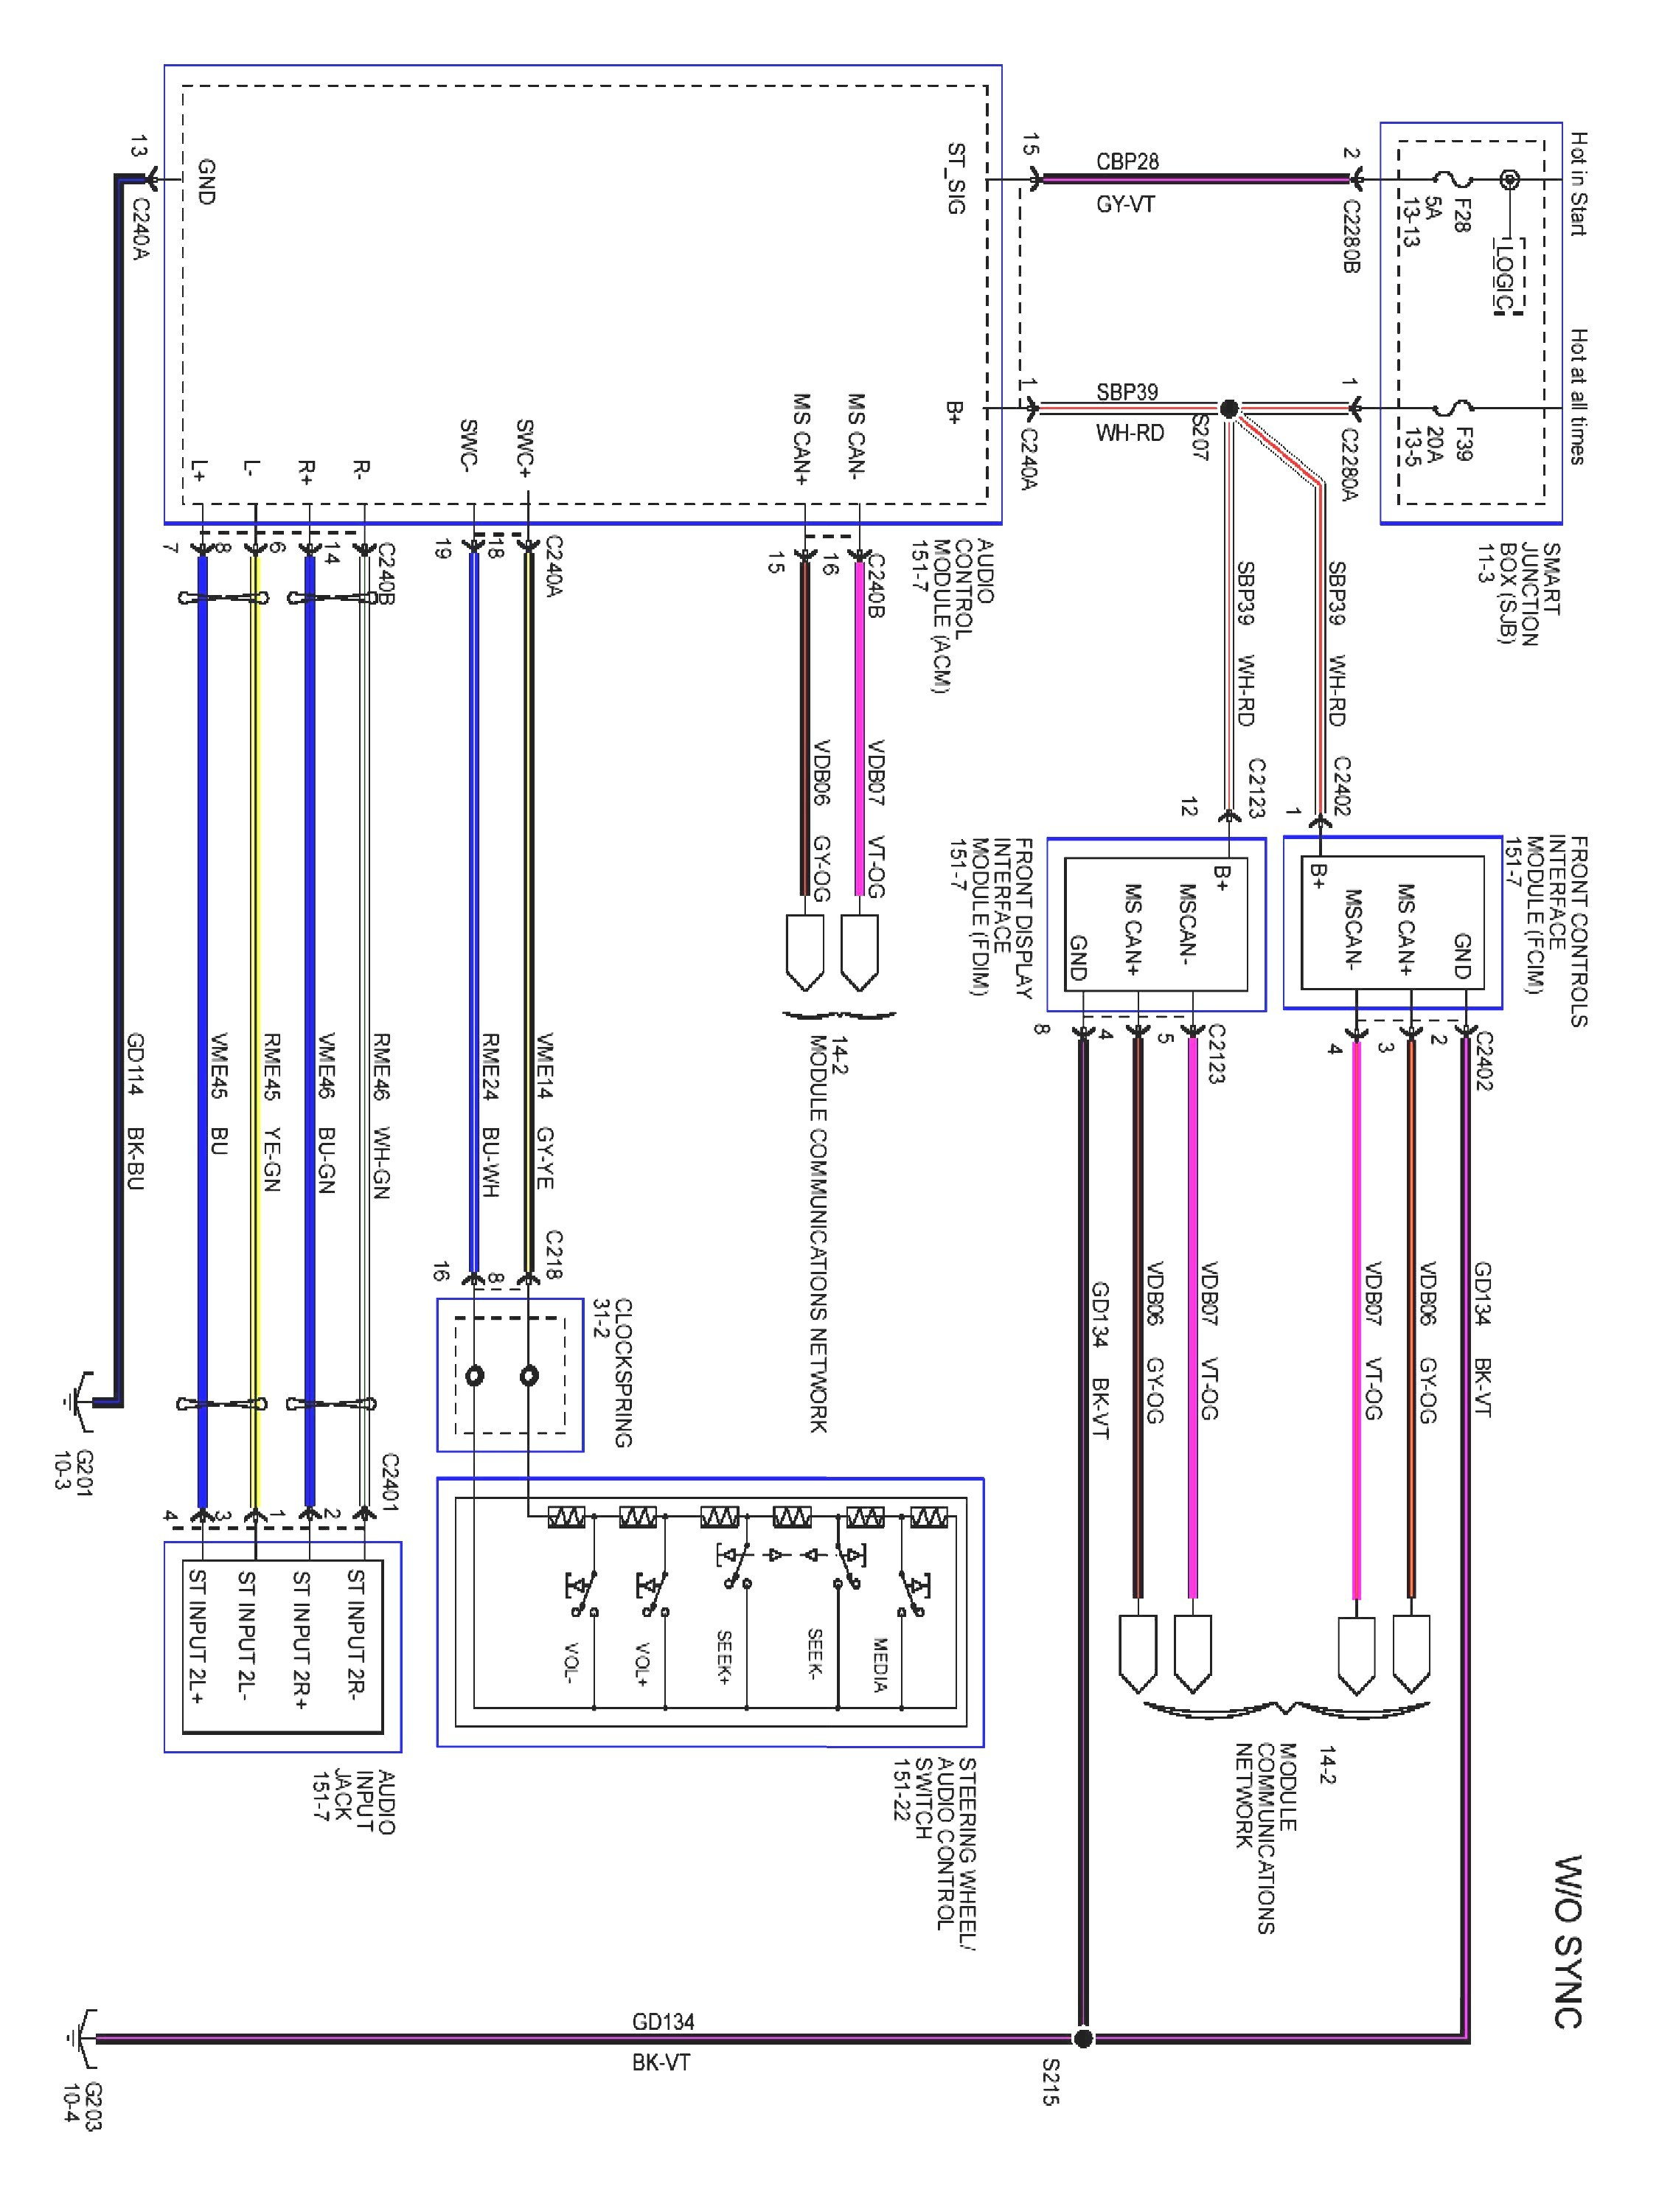 Kenwood Kdc 148 Am Wiring Diagram | Wiring Diagram - Kenwood Kdc 248U Wiring Diagram